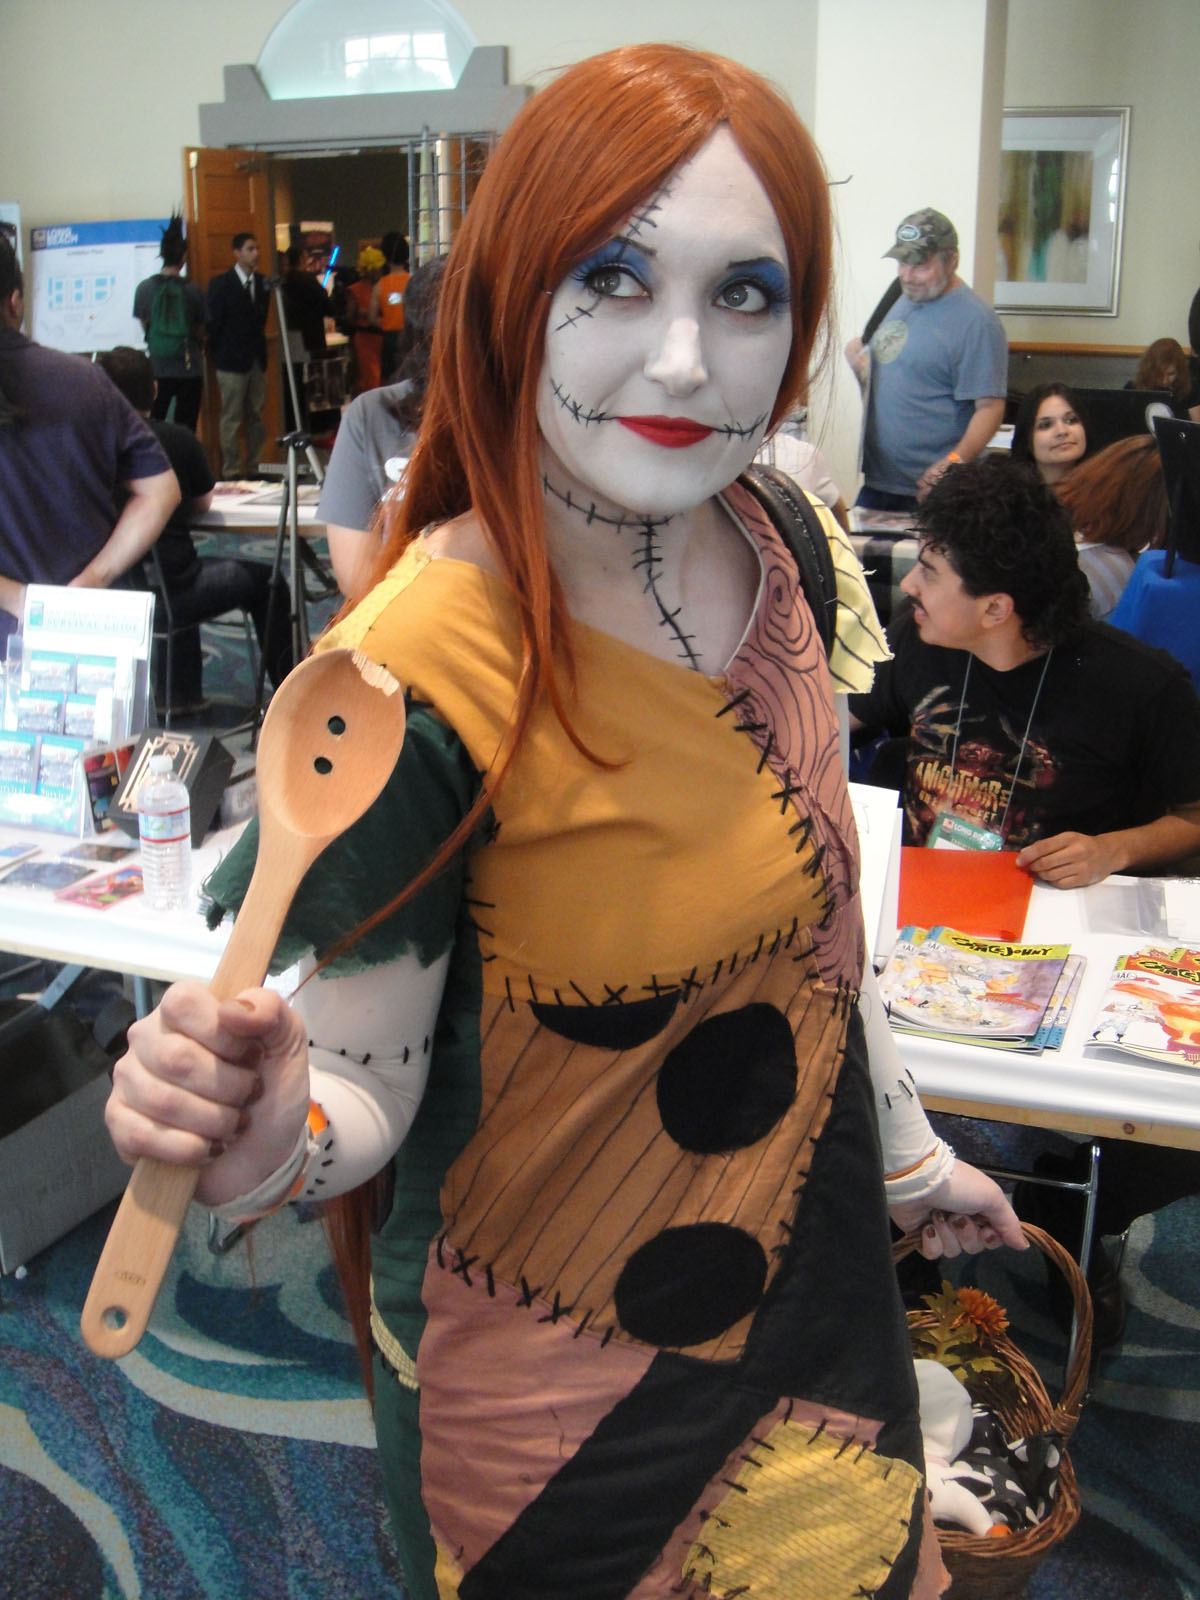 File:Long Beach Comic Expo 2012 - Sally from the Nightmare Before ...